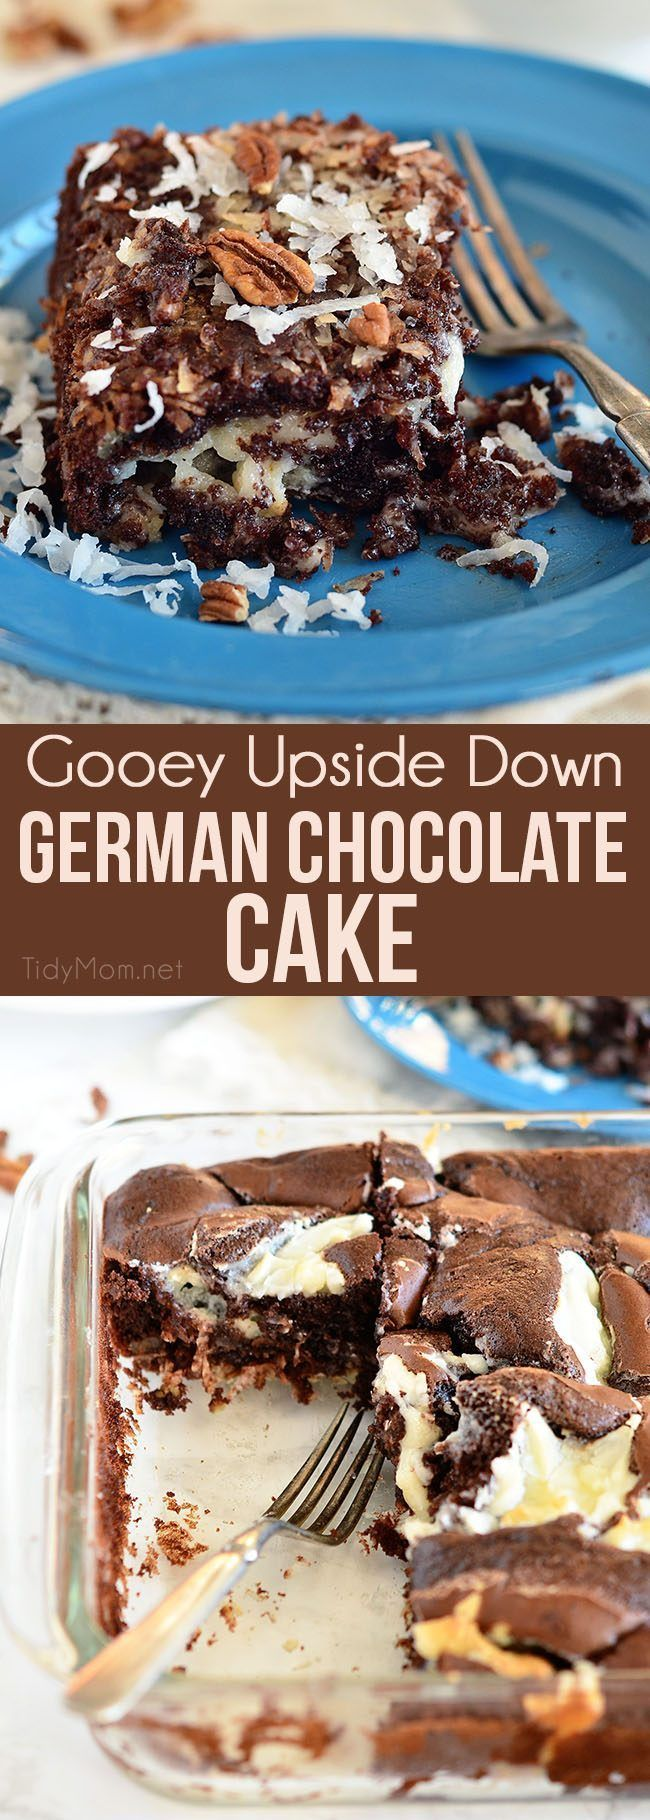 Gooey Upside Down German Chocolate Cake is an easy delicious twist on the traditional German Chocolate Cake. This dessert is gooey, moist, and super simple to throw together thanks to a cake mix. Where it lacks in good looks, it more than makes it up in t